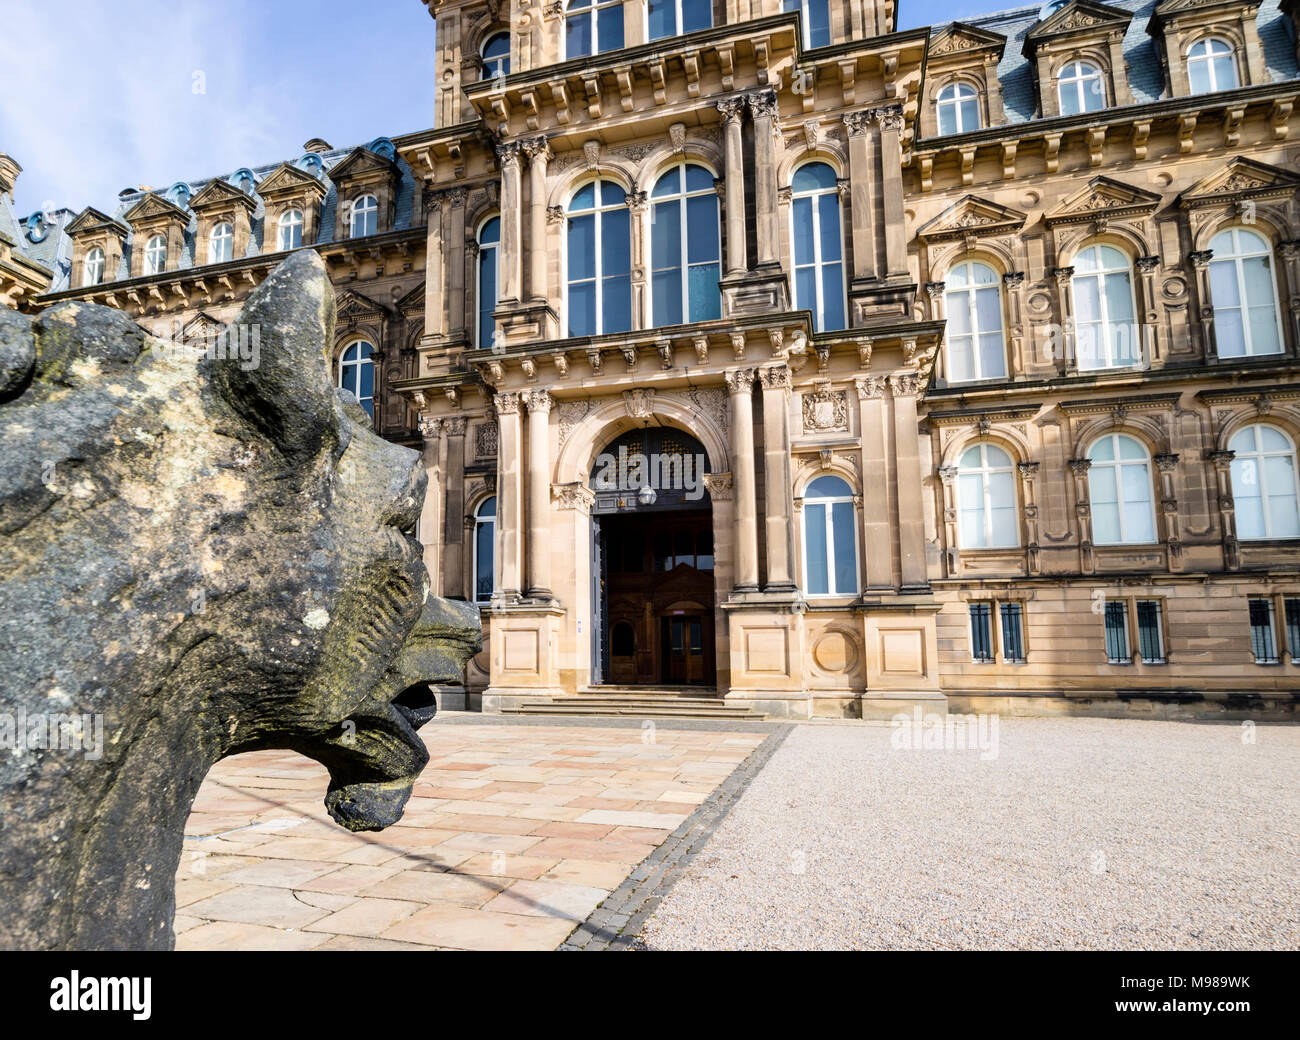 Heraldic Statue Watching Over the Entrance to the Bowes Museum, Barnard Castle, Teesdale, County Durham, UK. - Stock Image